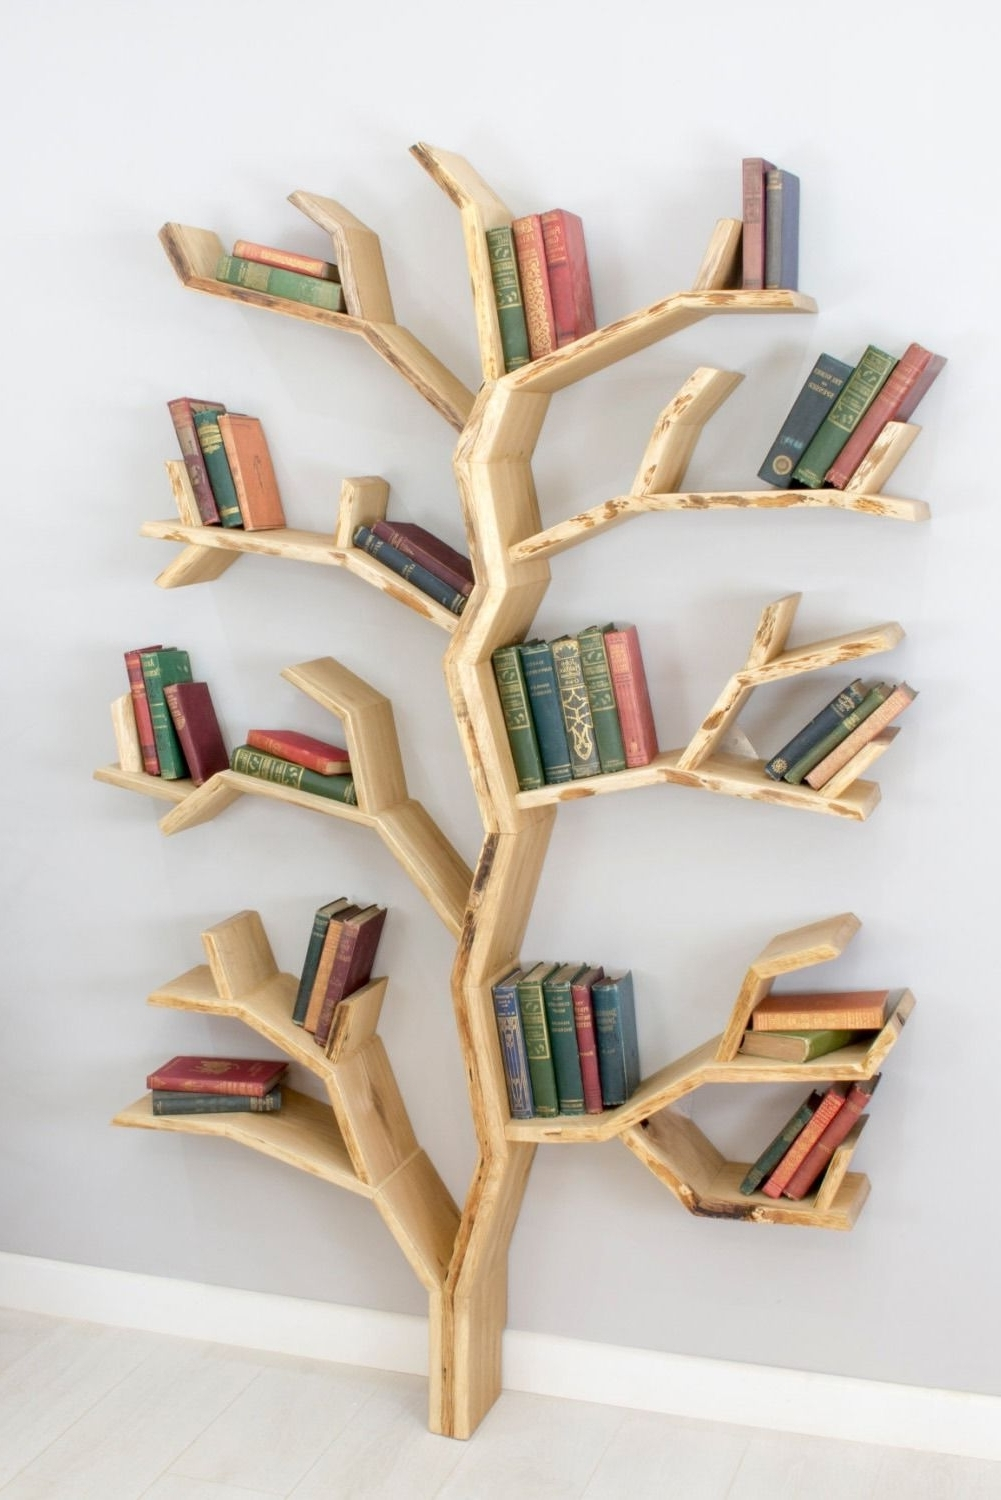 Carpentry, Snowball And Creative Within Latest Tree Bookcases (View 4 of 15)